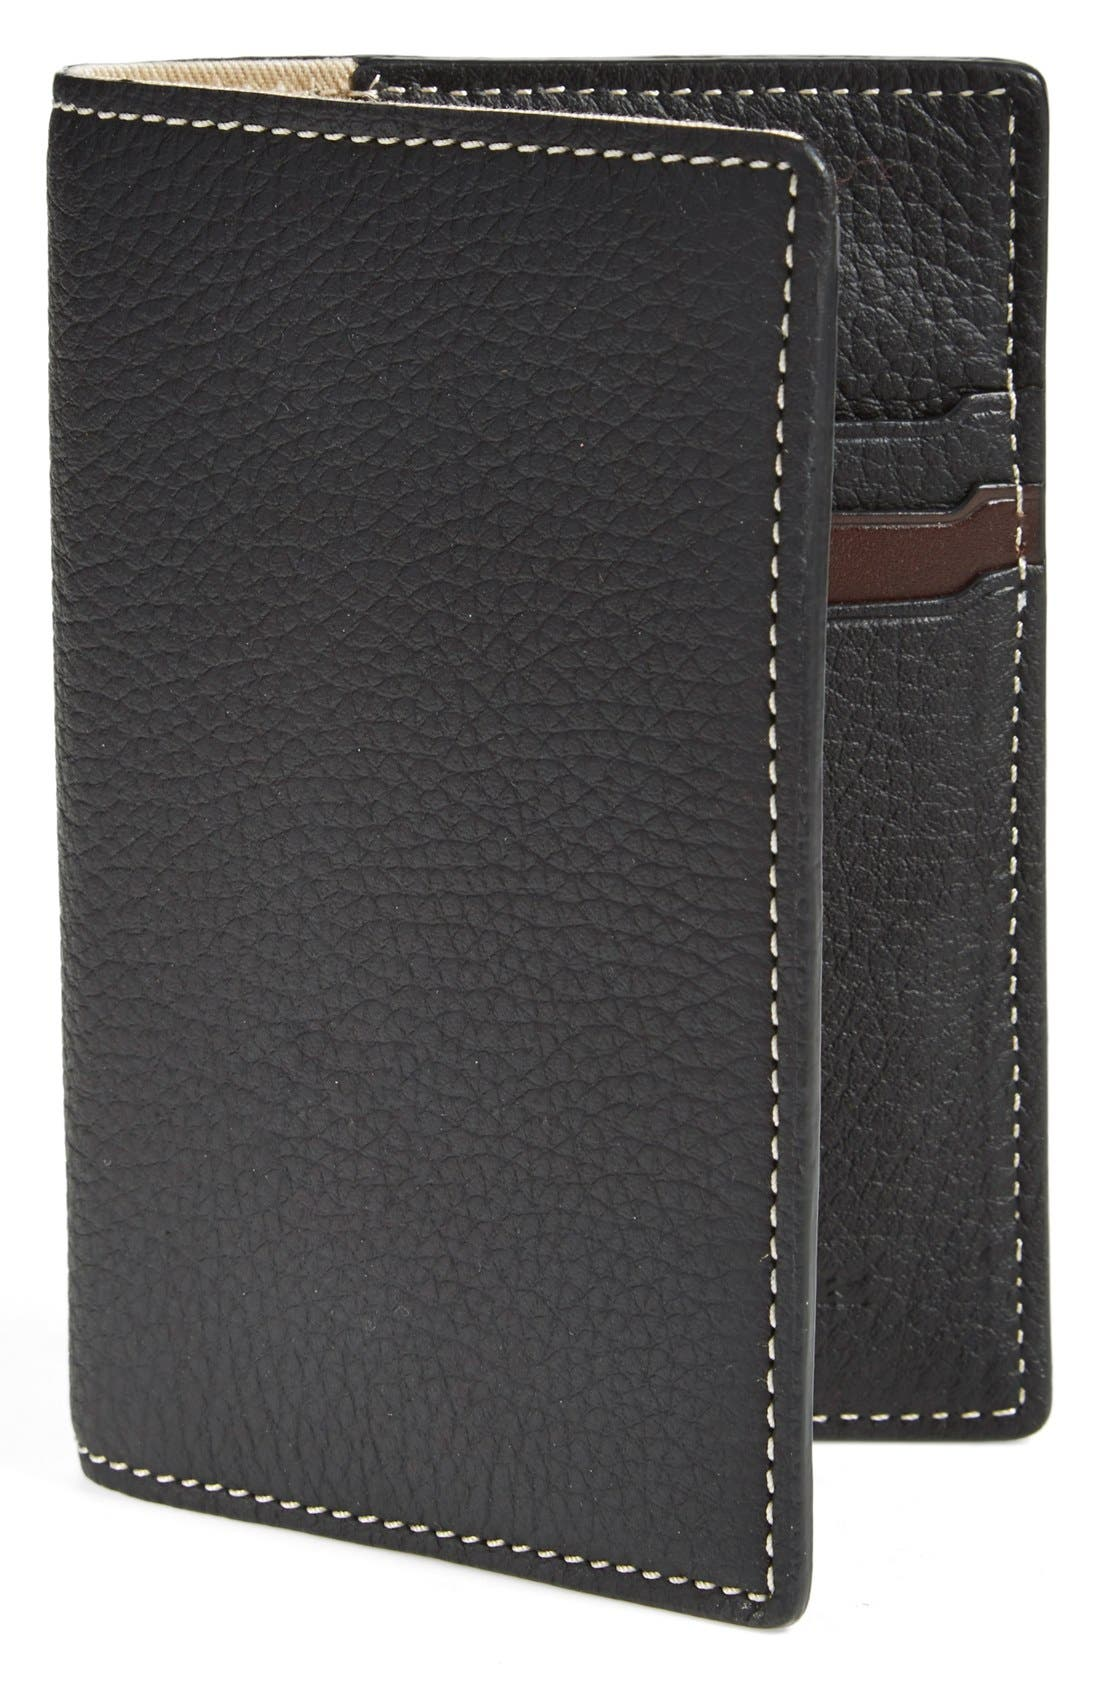 'Jackson' Norwegian Elk Leather Passport Holder,                             Main thumbnail 1, color,                             Black Norwegian Elk